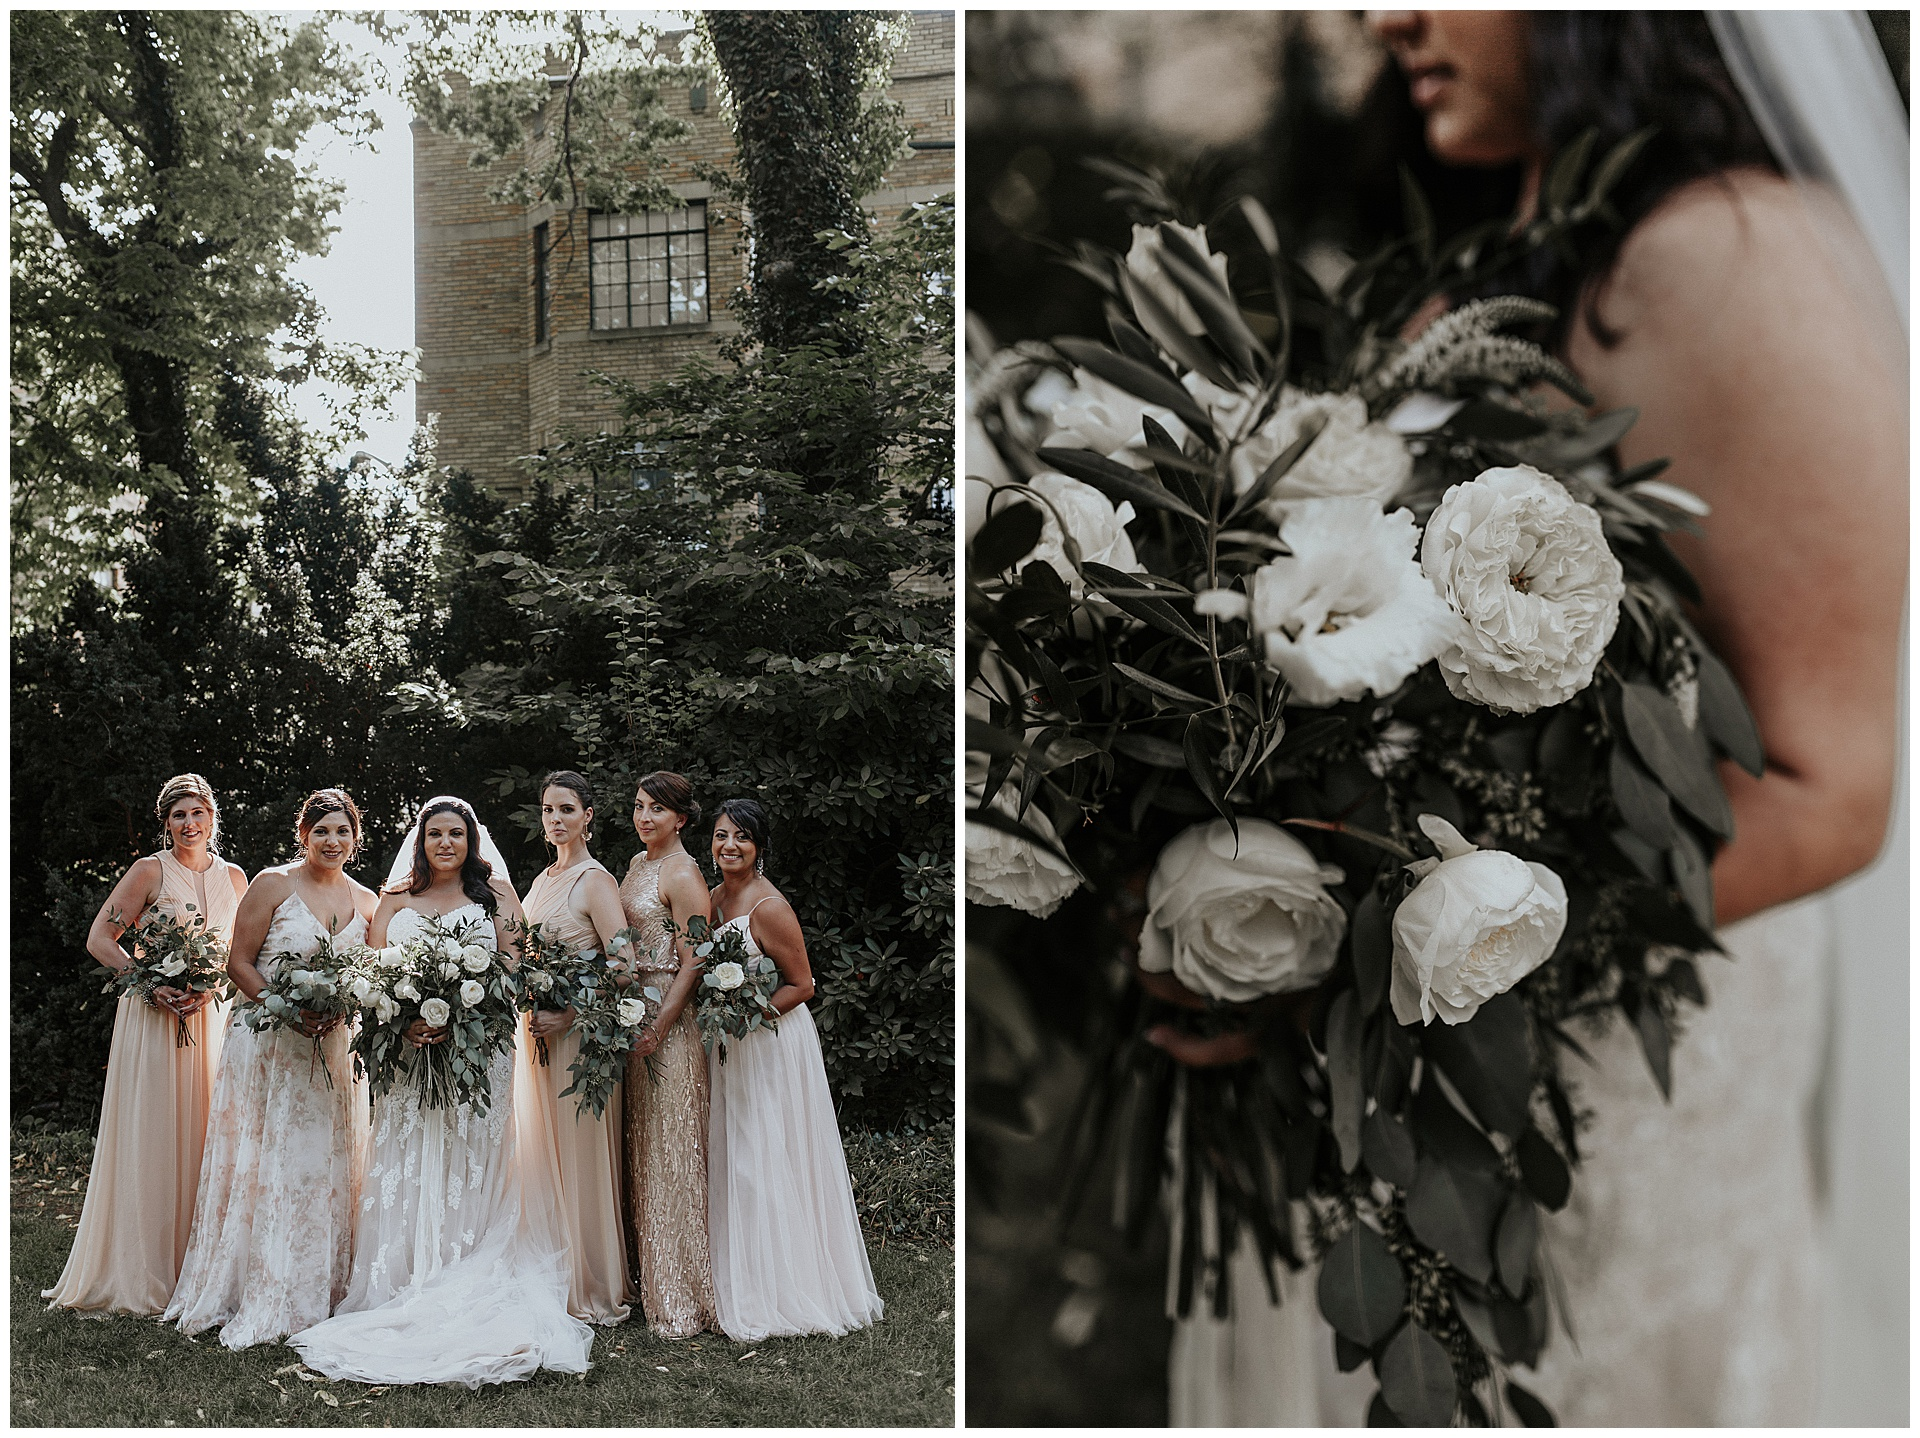 kelton house wedding columbus ohio_mia dimare photo47.jpg